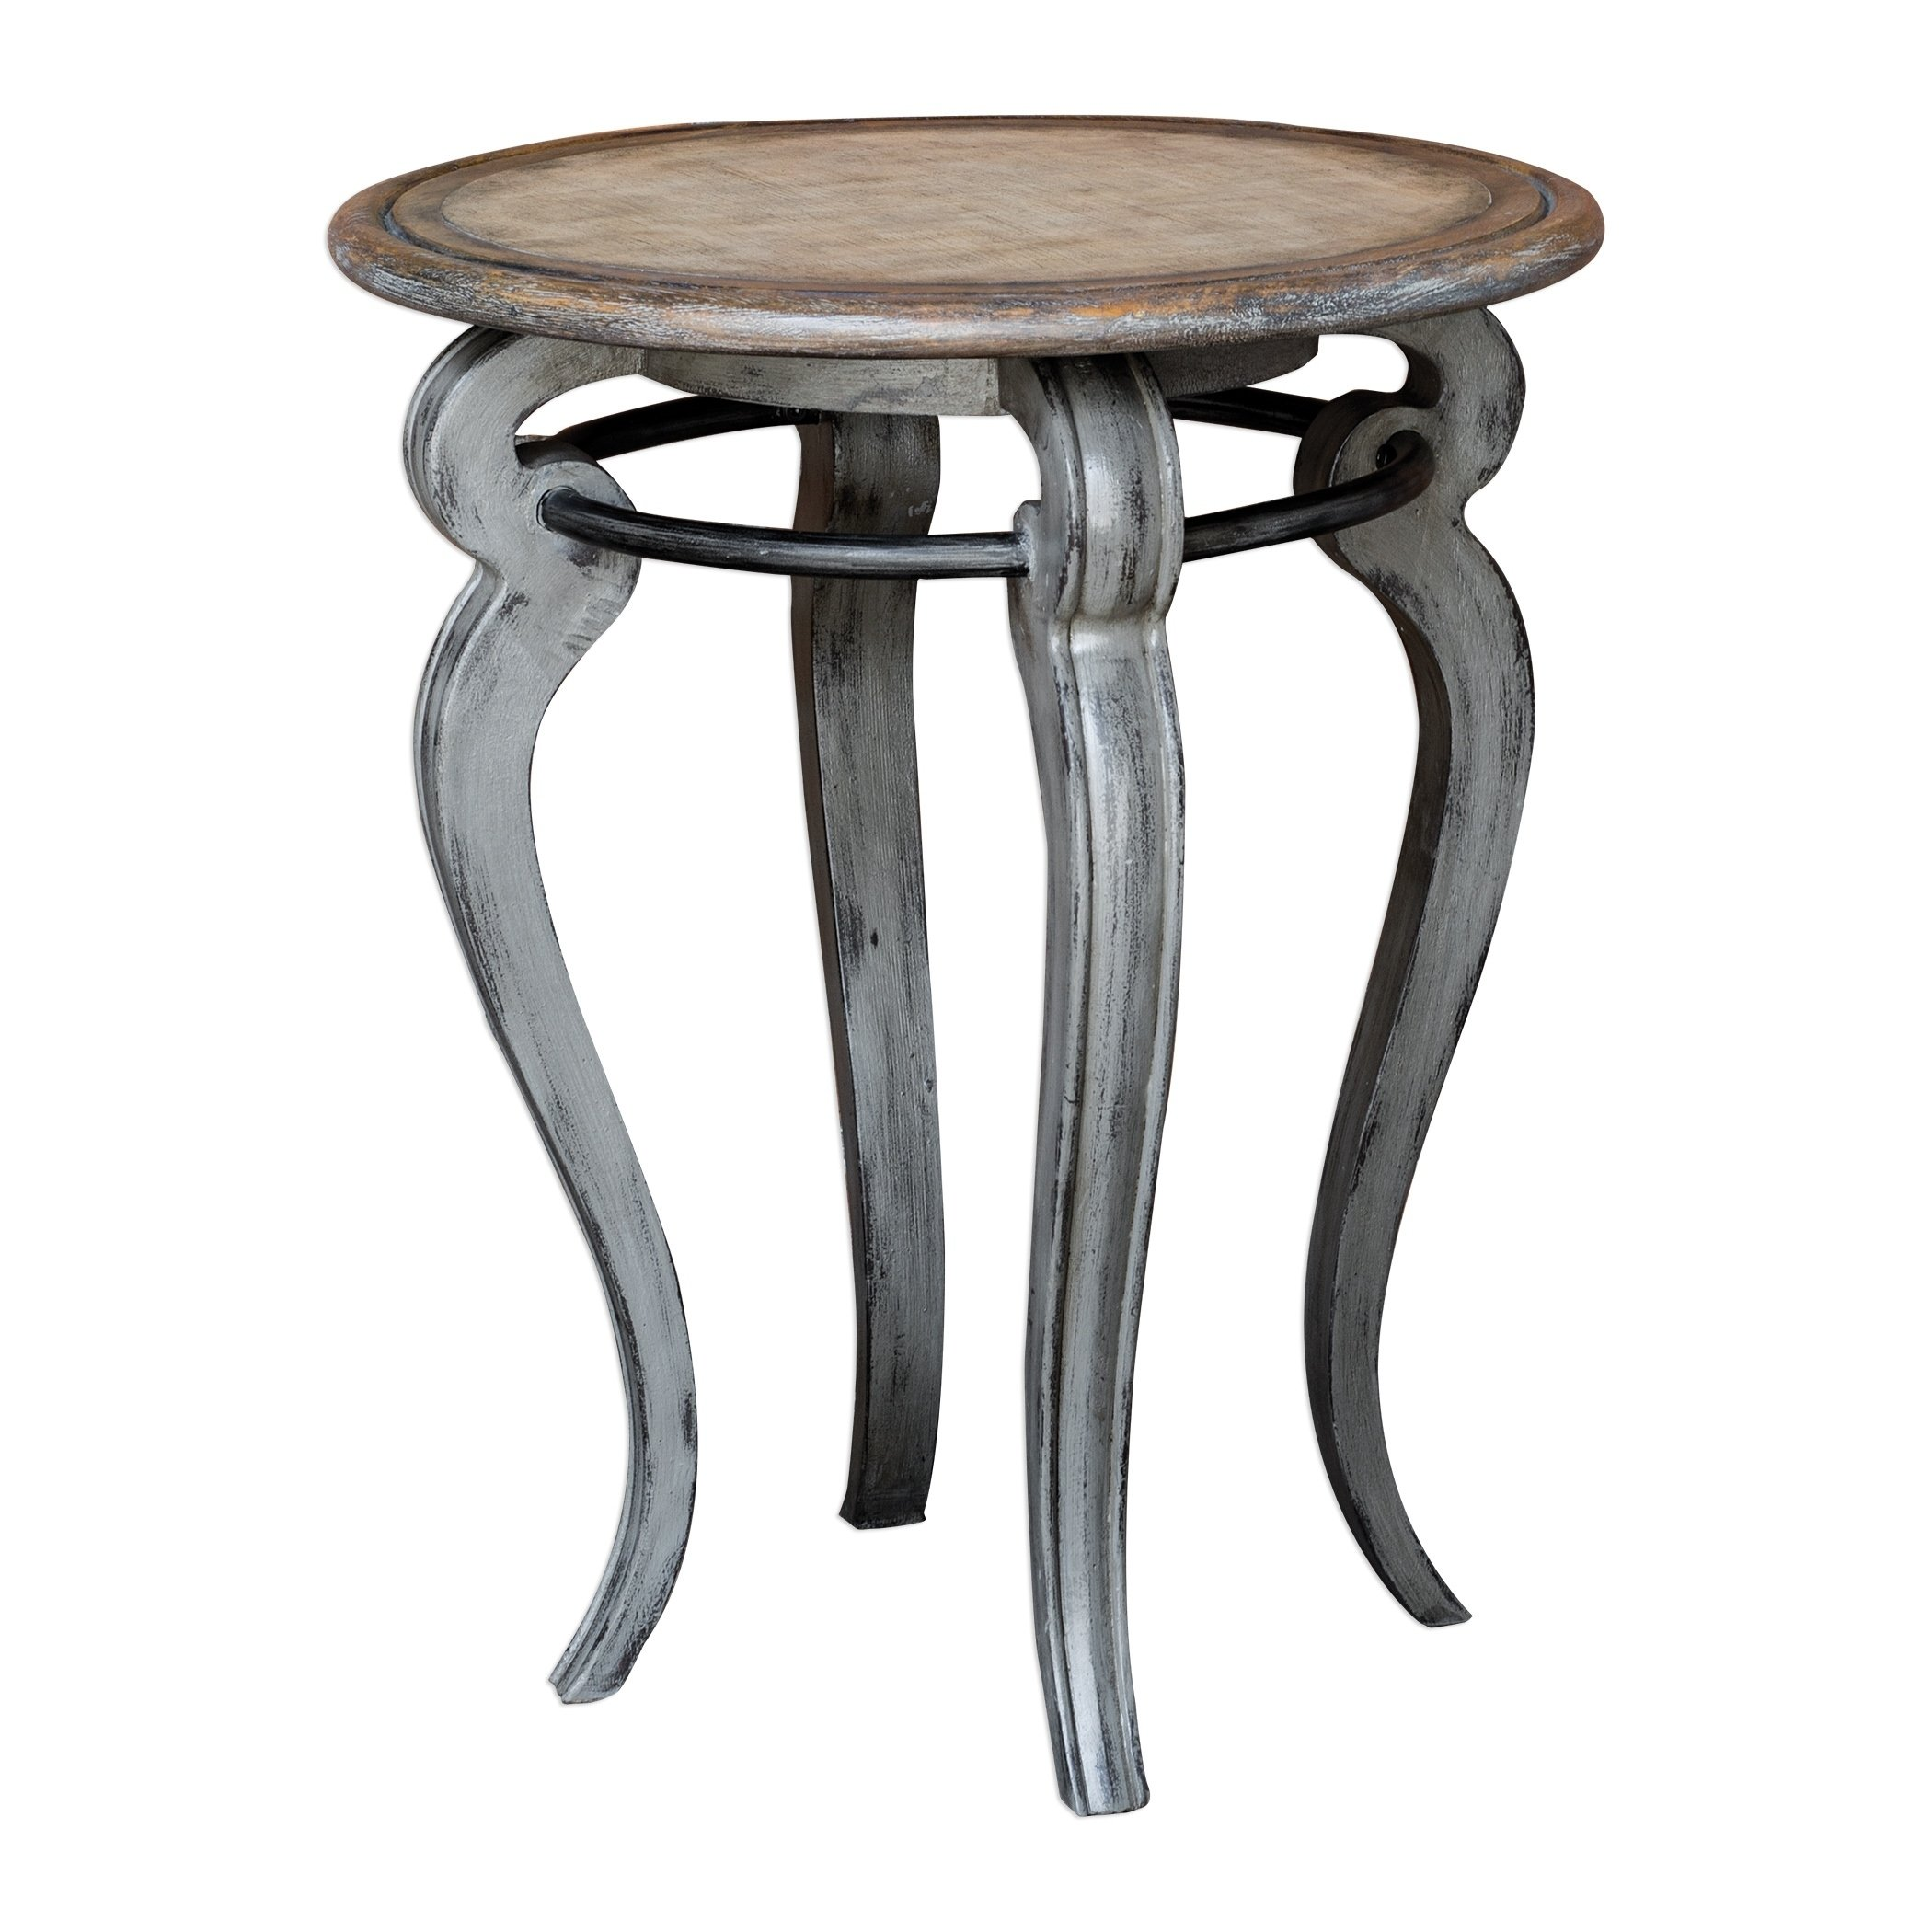 uttermost mariah distressed grey accent table free shipping jinan today outdoor cordless lamps kmart dining chairs door cabinet inch high pub small room furniture green lamp white